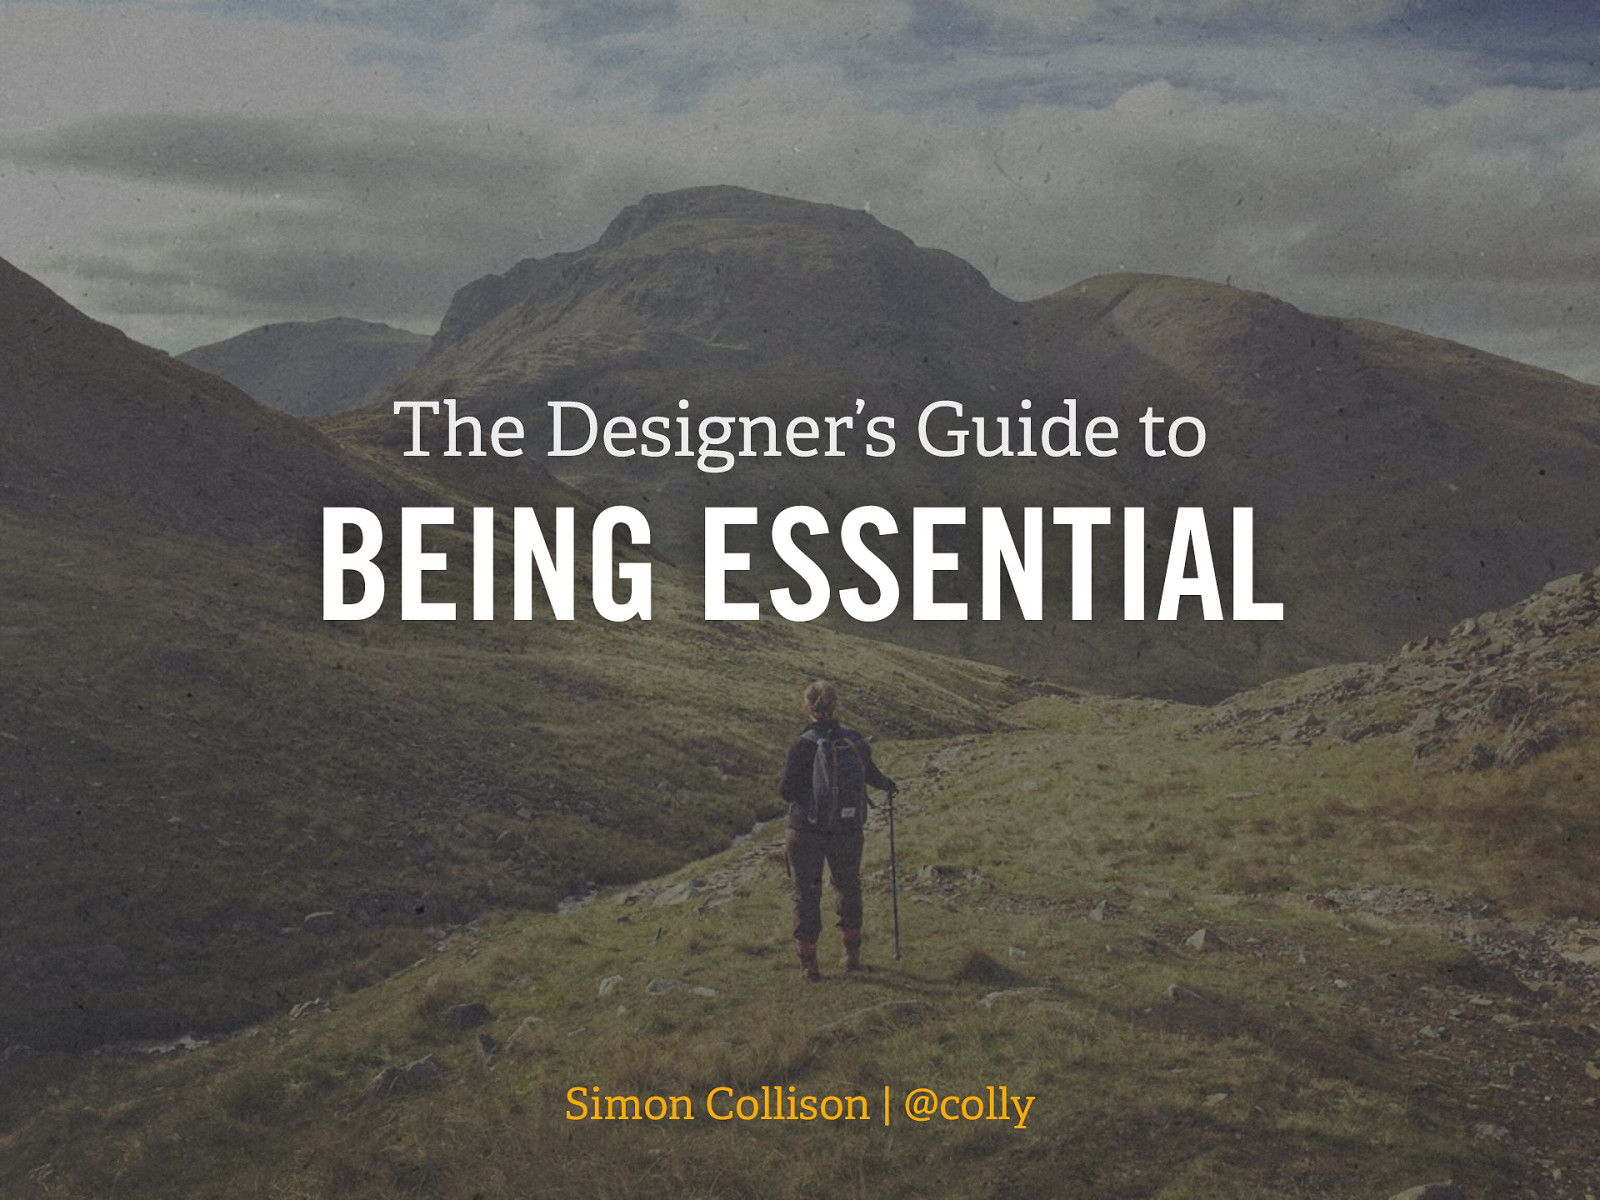 The Designer's Guide to Being Essential